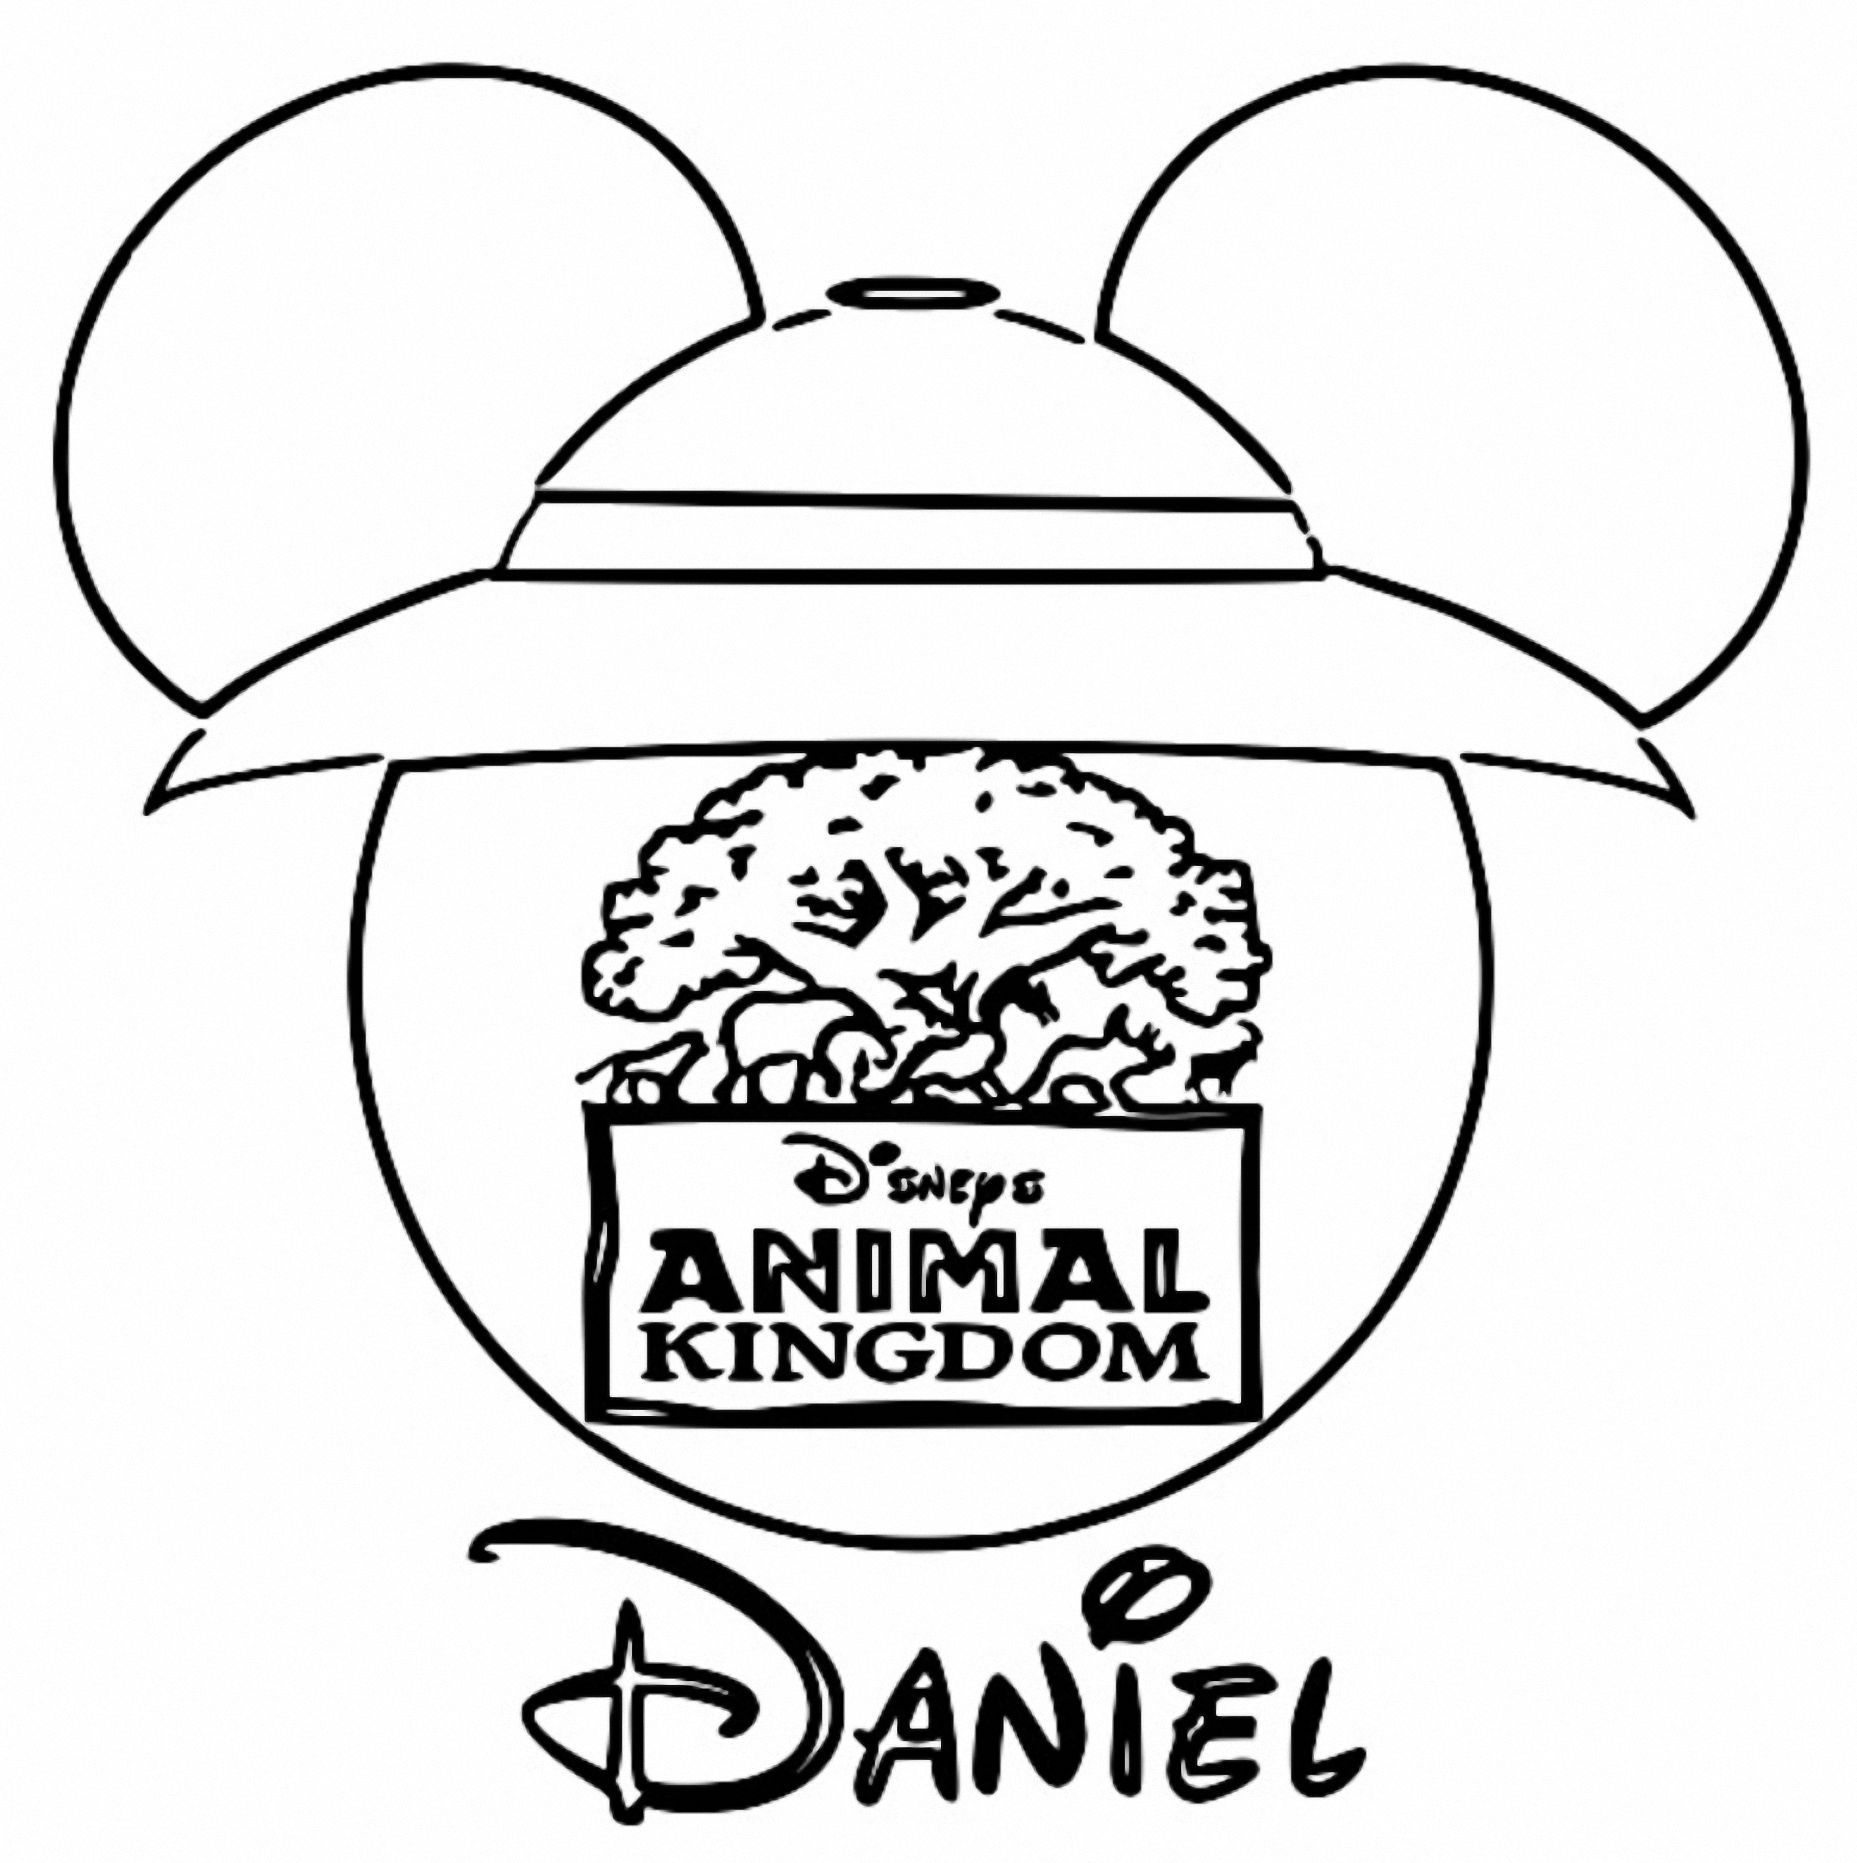 Animal Kingdom Mickey Face Silhouette Coloring Page ...